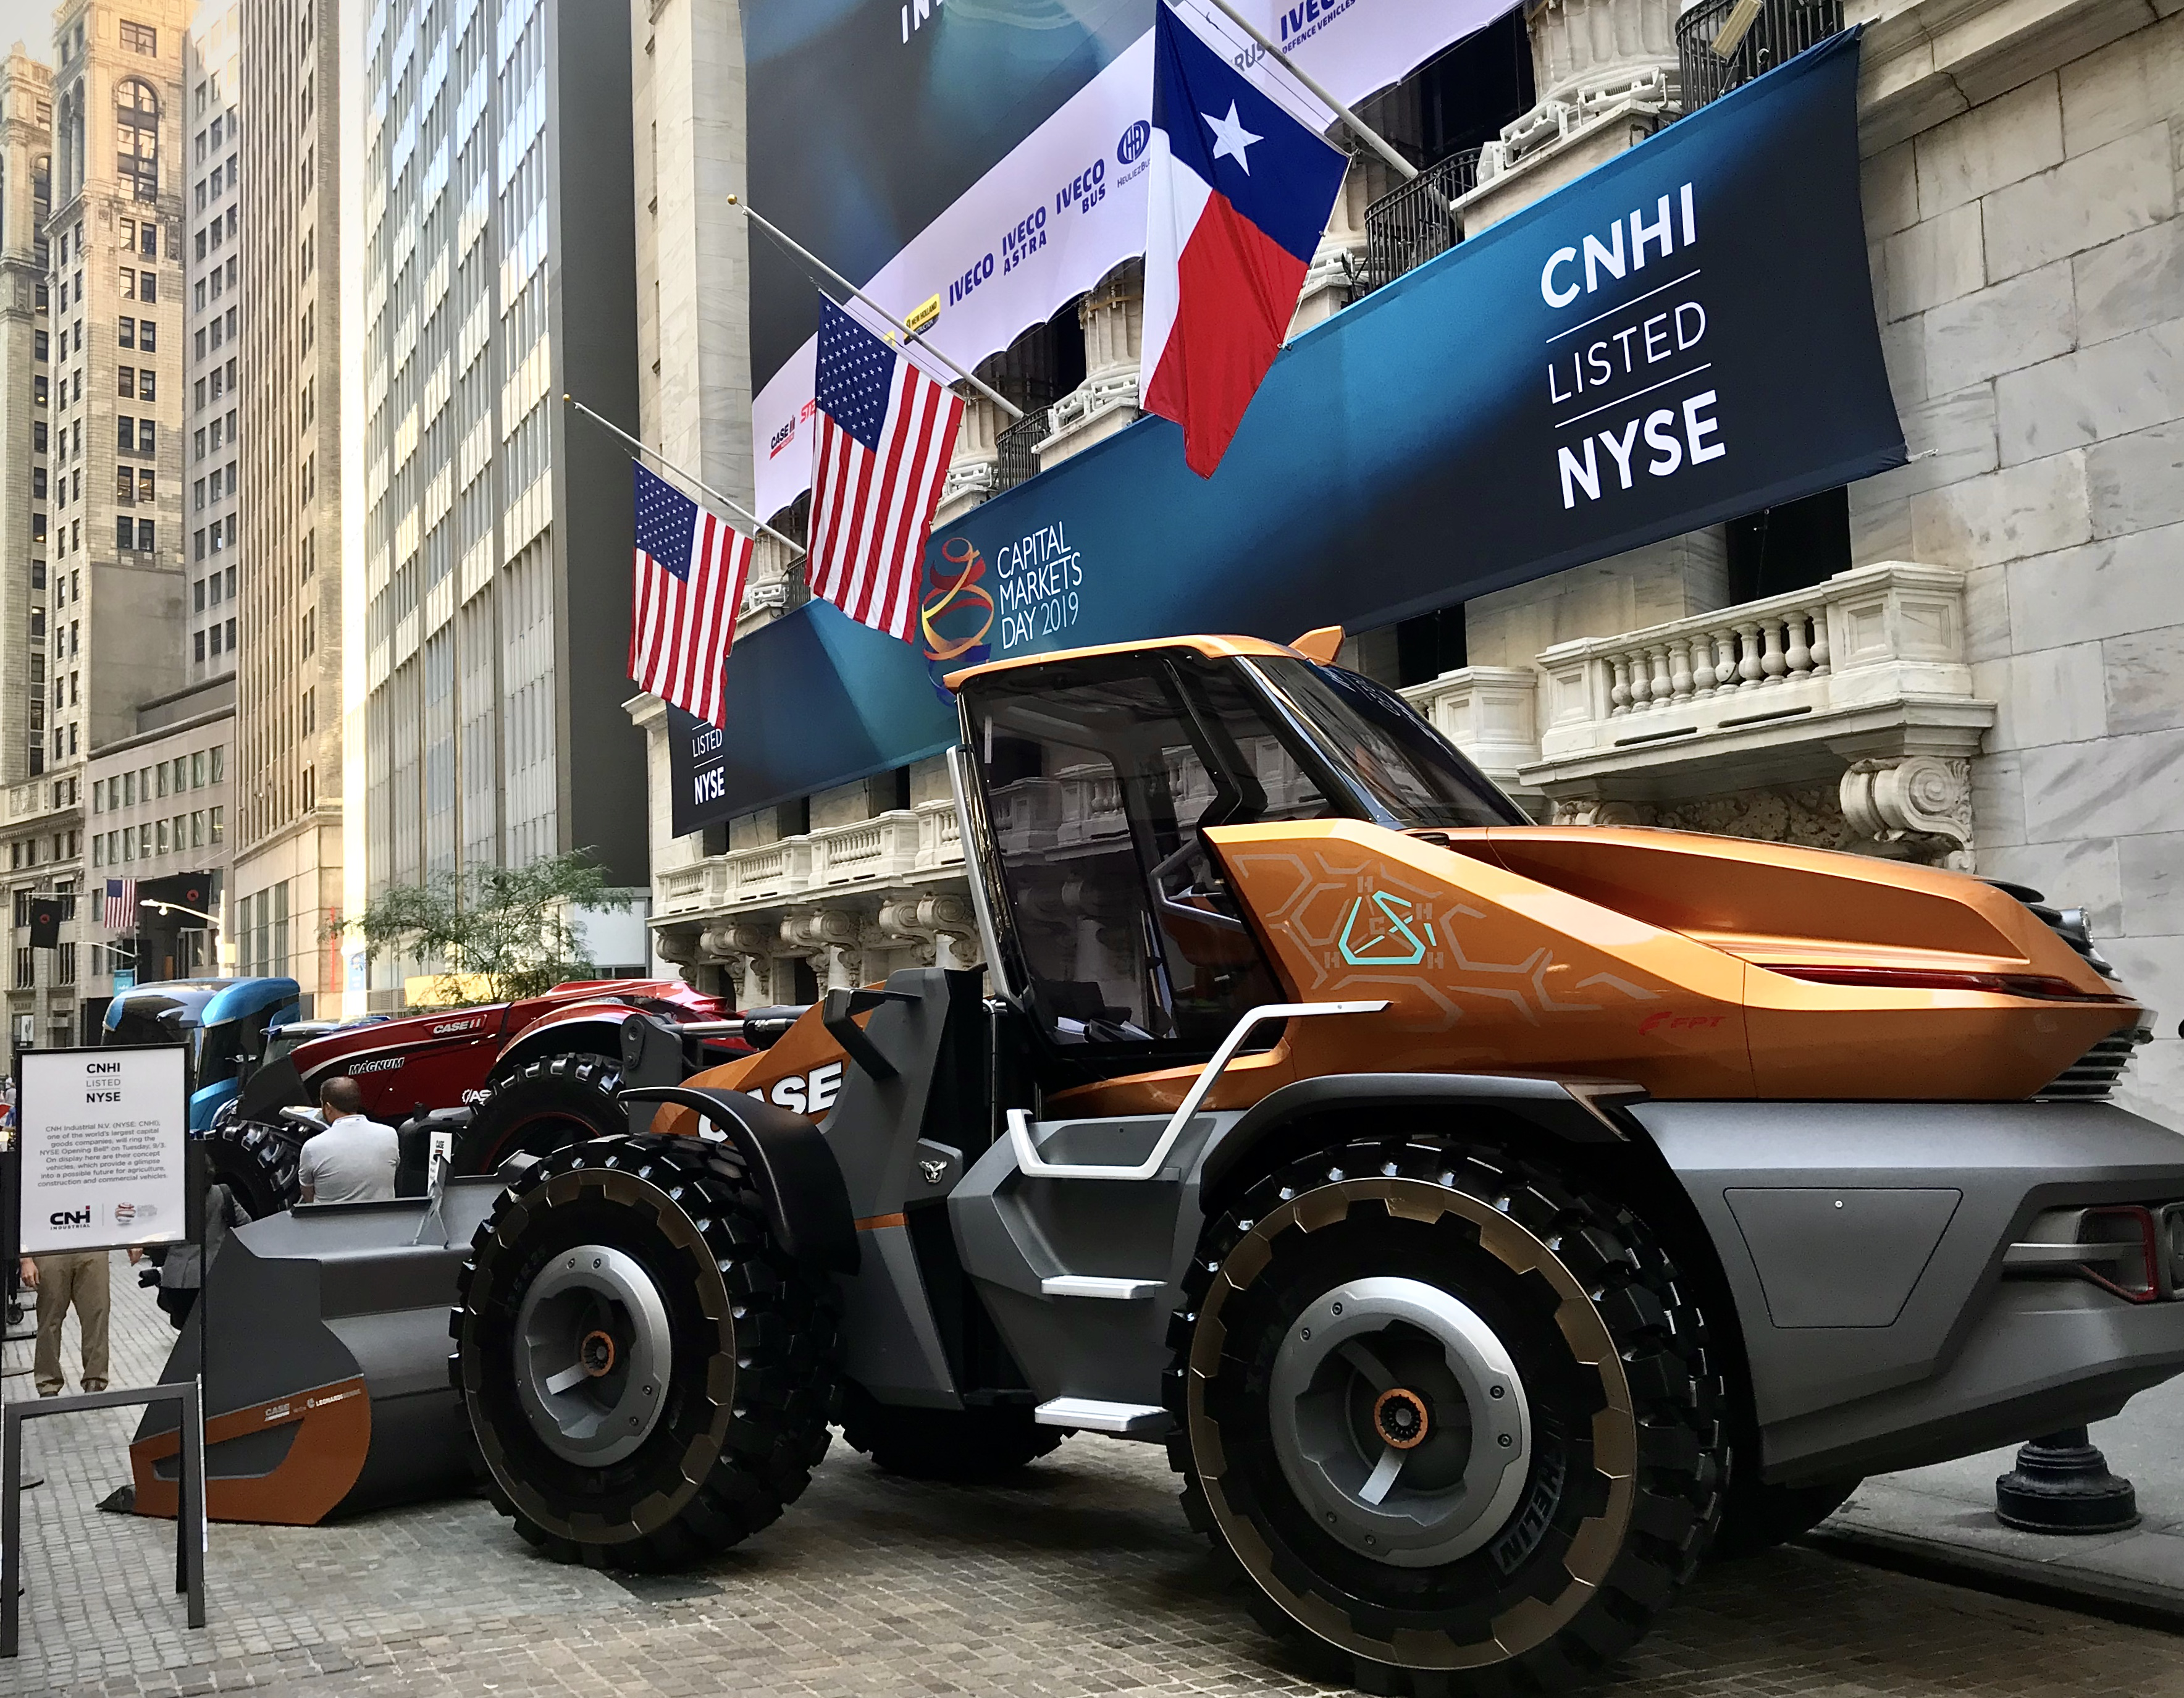 CNH Industrial listed on NYSE banner and Case CE's Tetra concept loader outside of the New York Stock Exchange on Wall Street